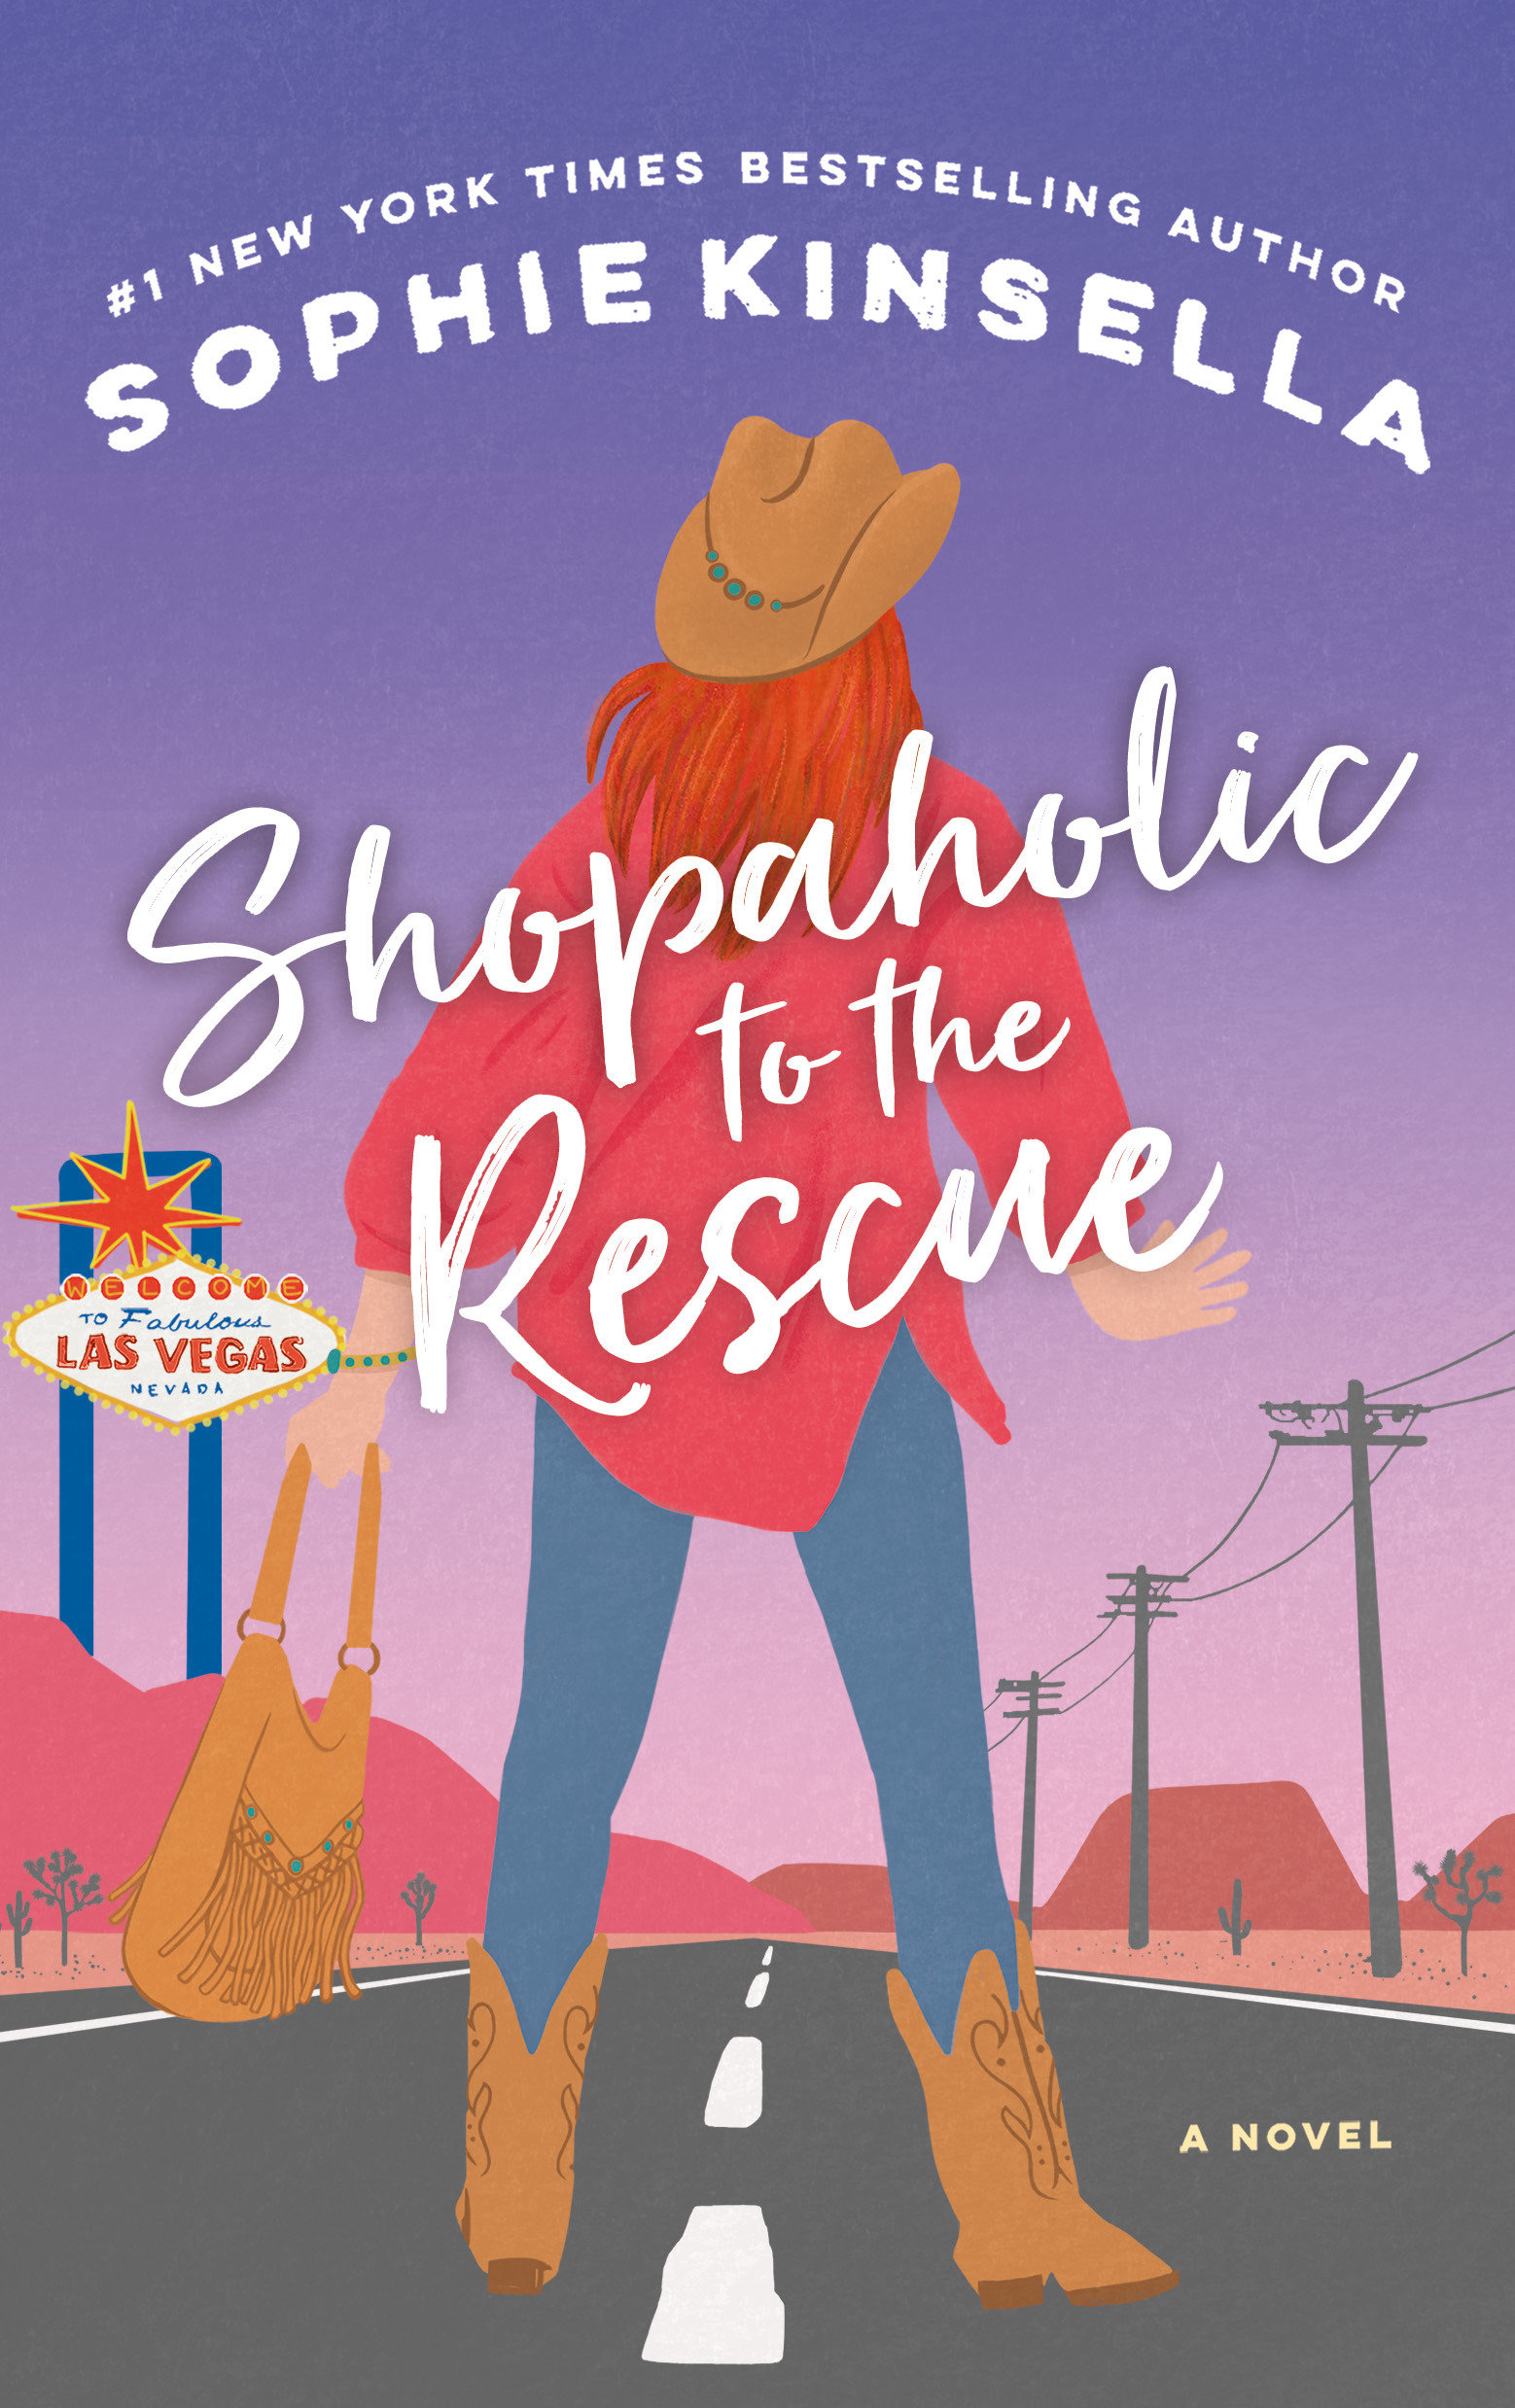 Shopaholic to the rescue cover image